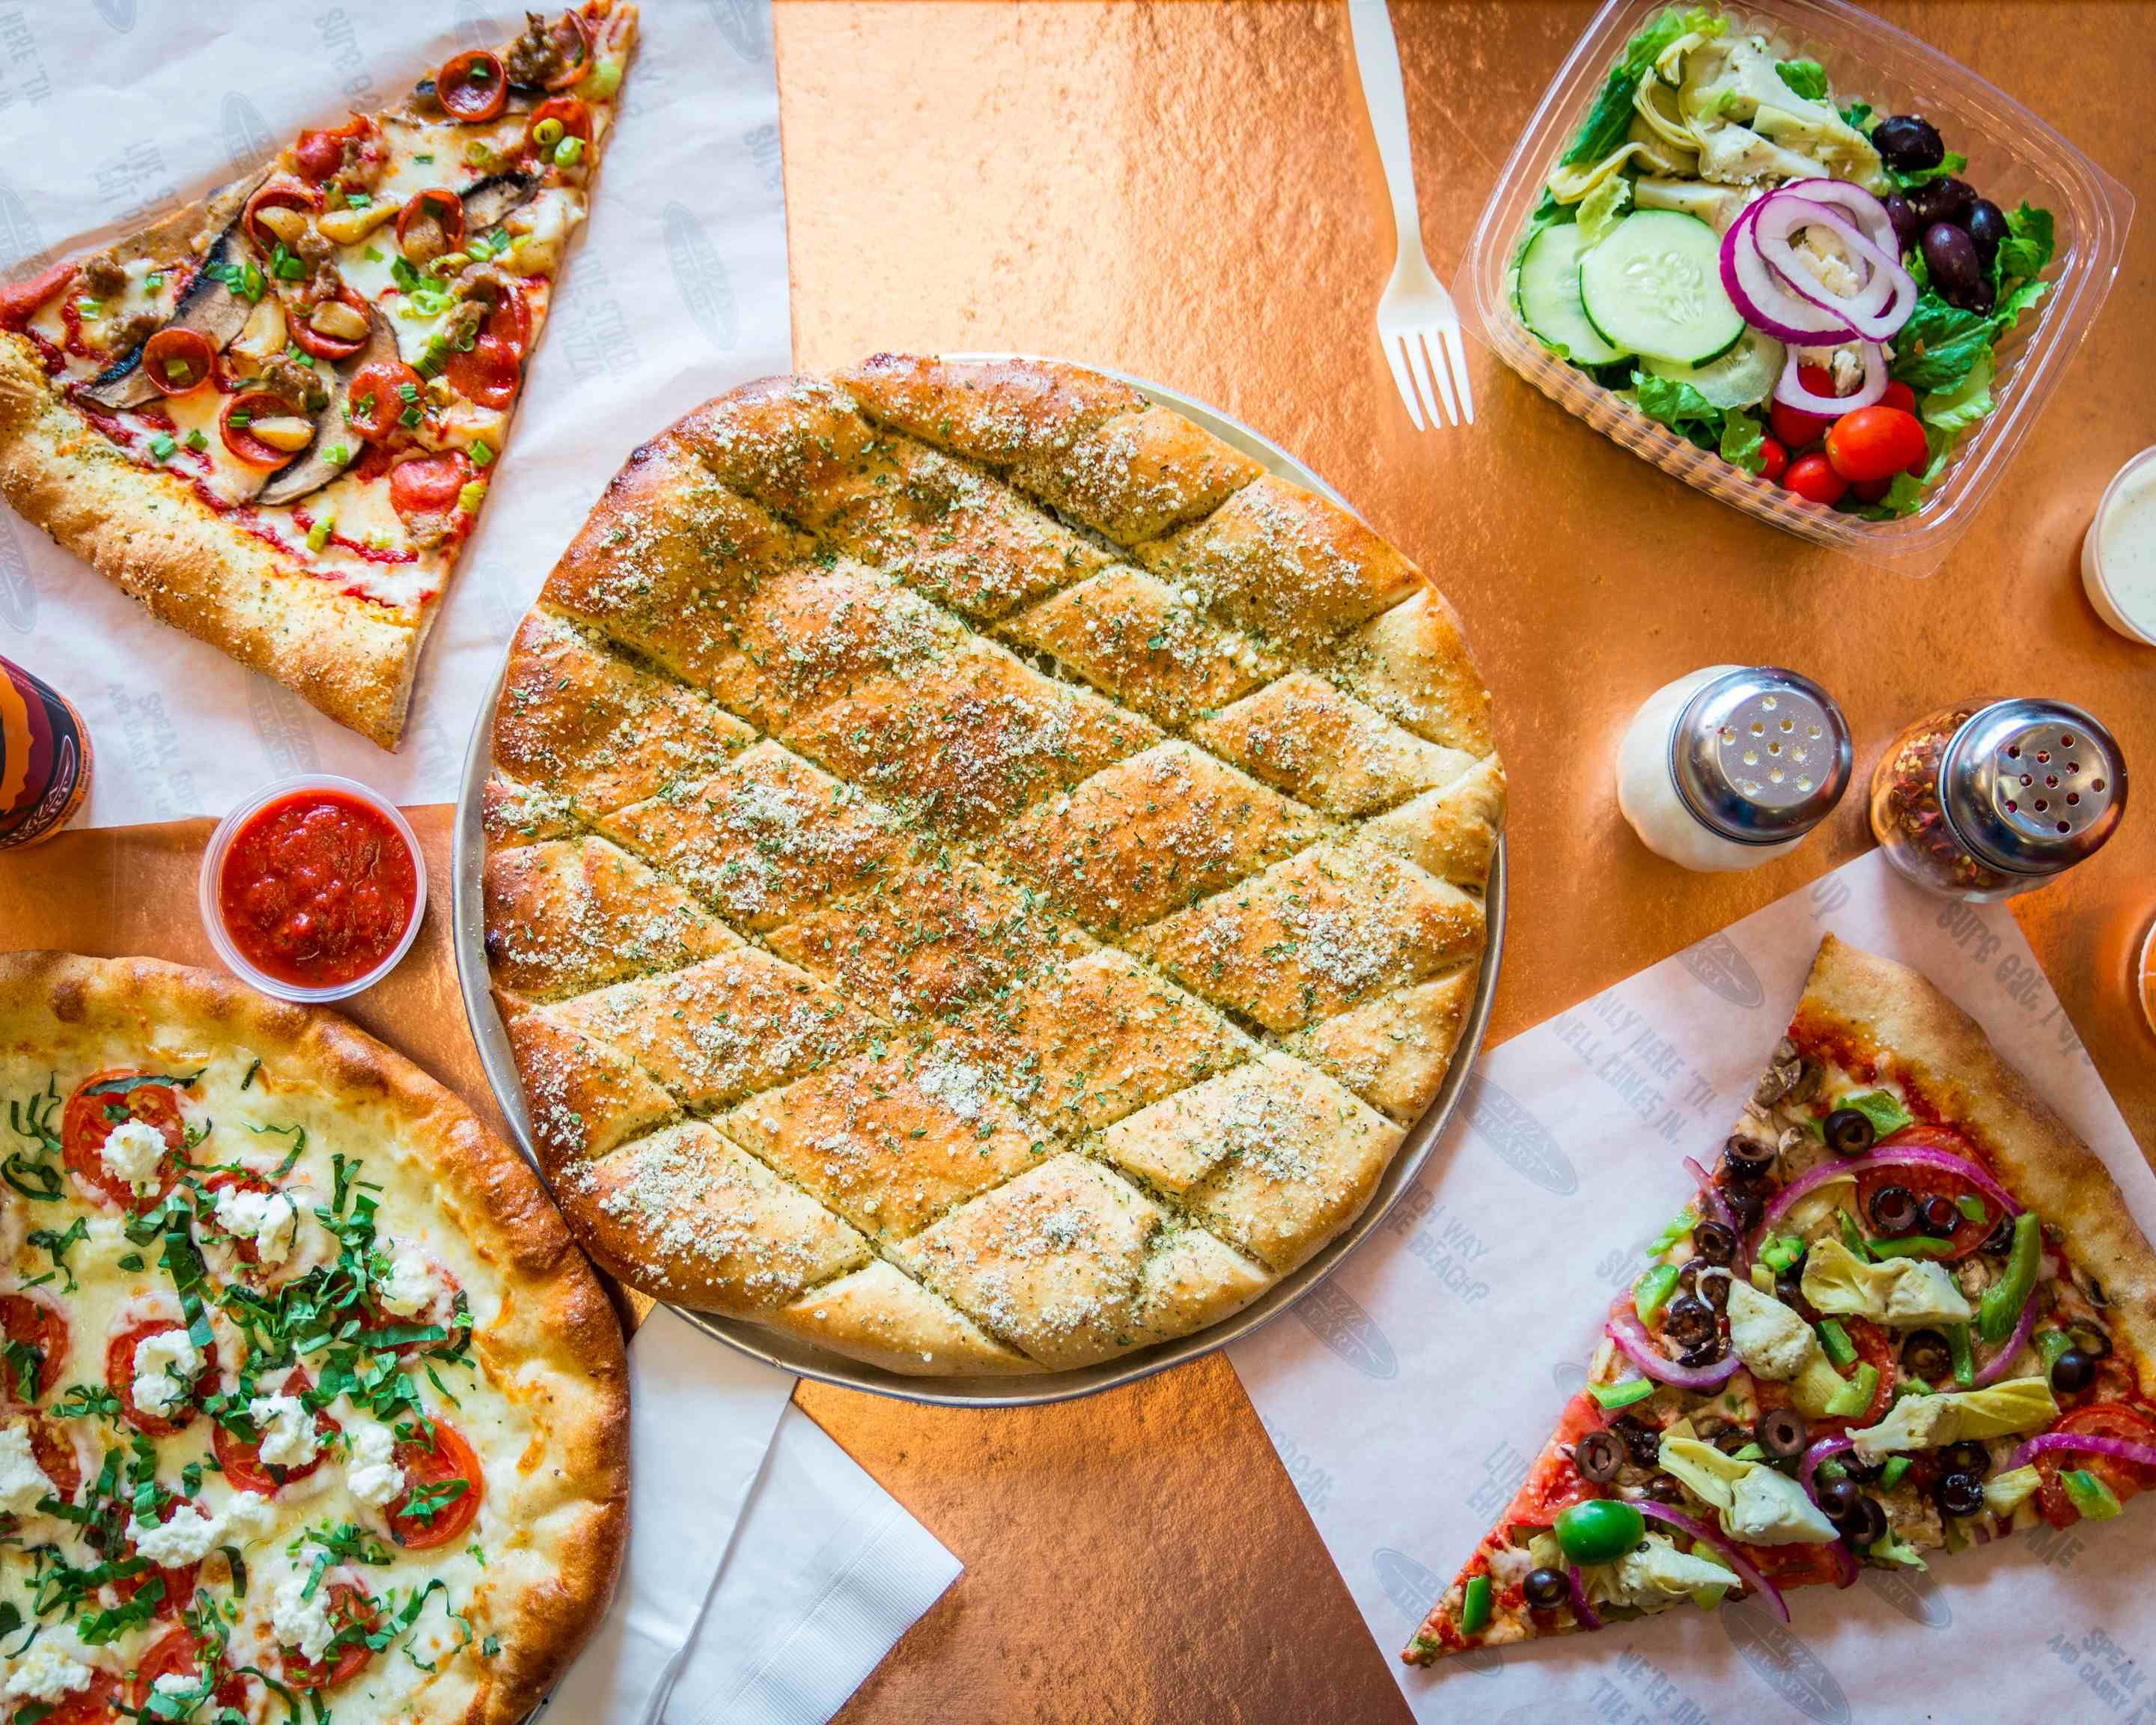 Active Pizza My Heart Coupon Codes & Deals for August 12222